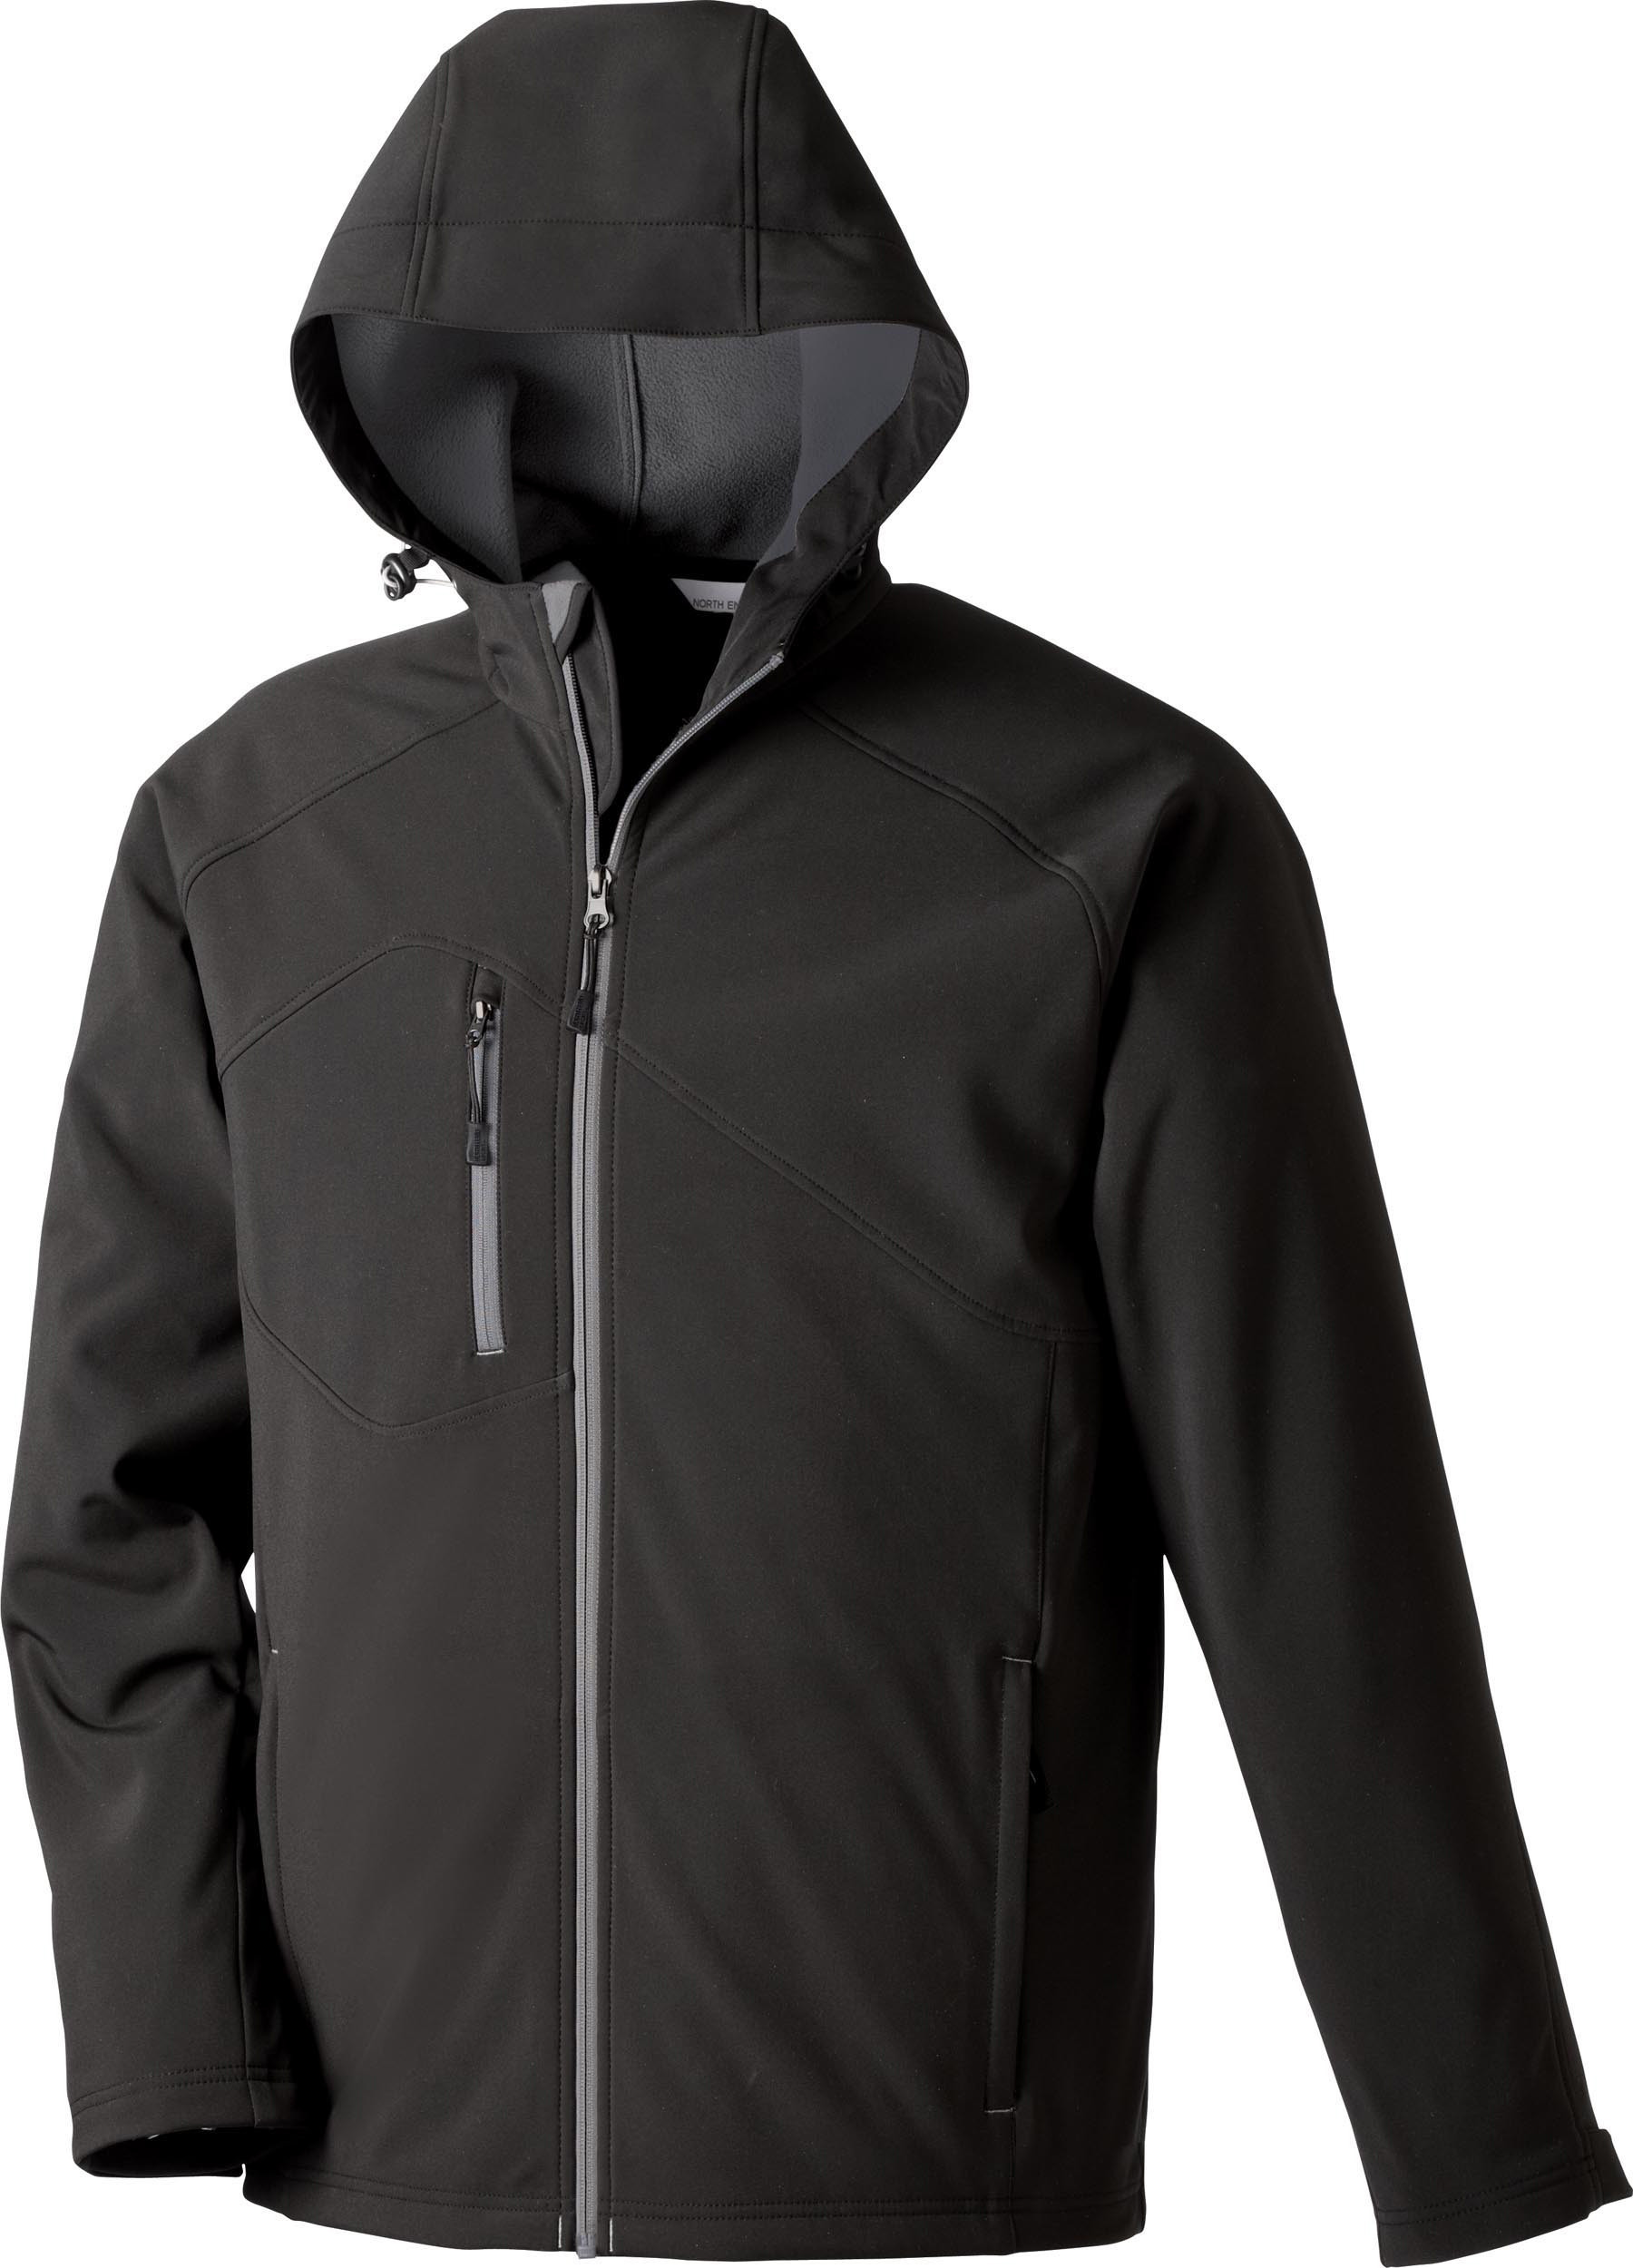 Ash City UTK 1 Warm.Logik 88166 - Prospect Men's Soft Shell Jacket With Hood